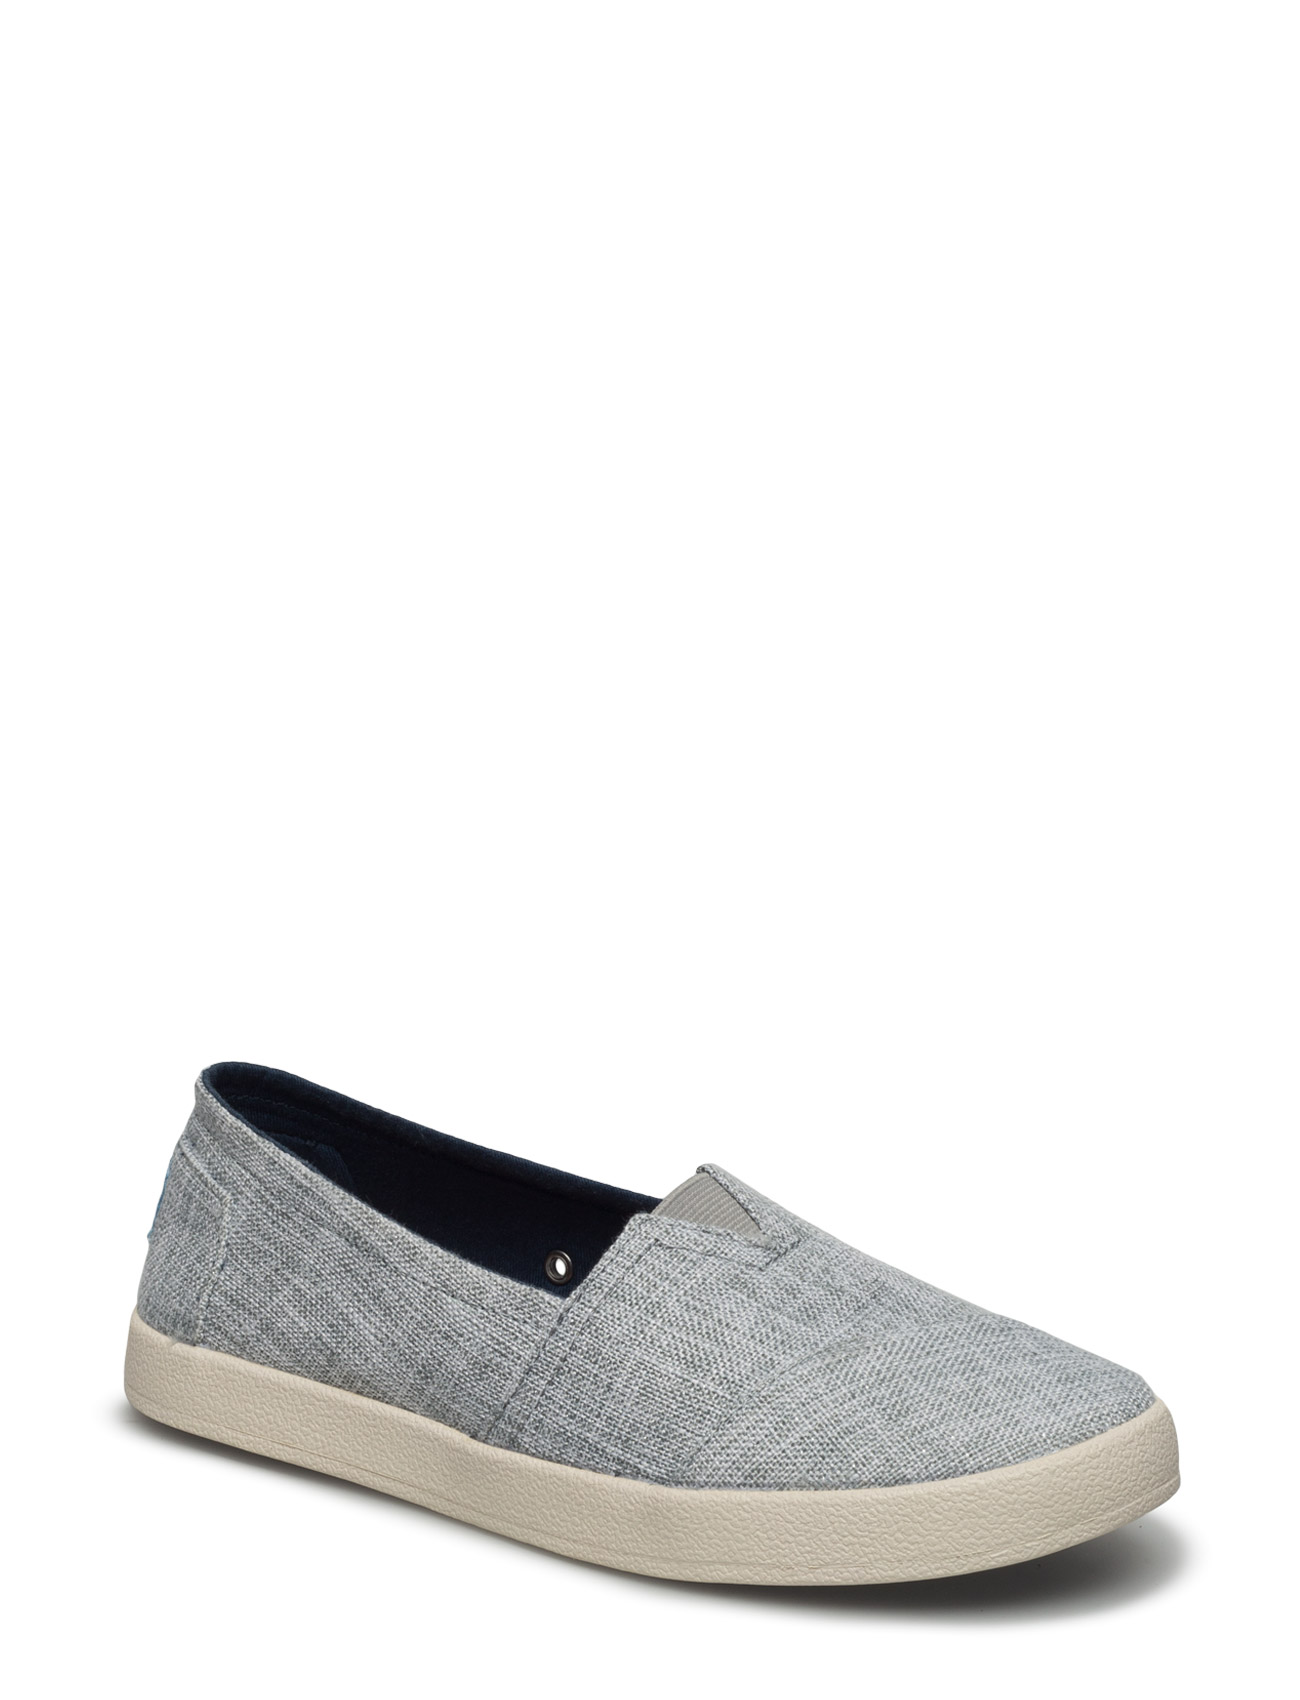 Drizzle Grey Lurex Woven Avalon TOMS Sneakers til Damer i